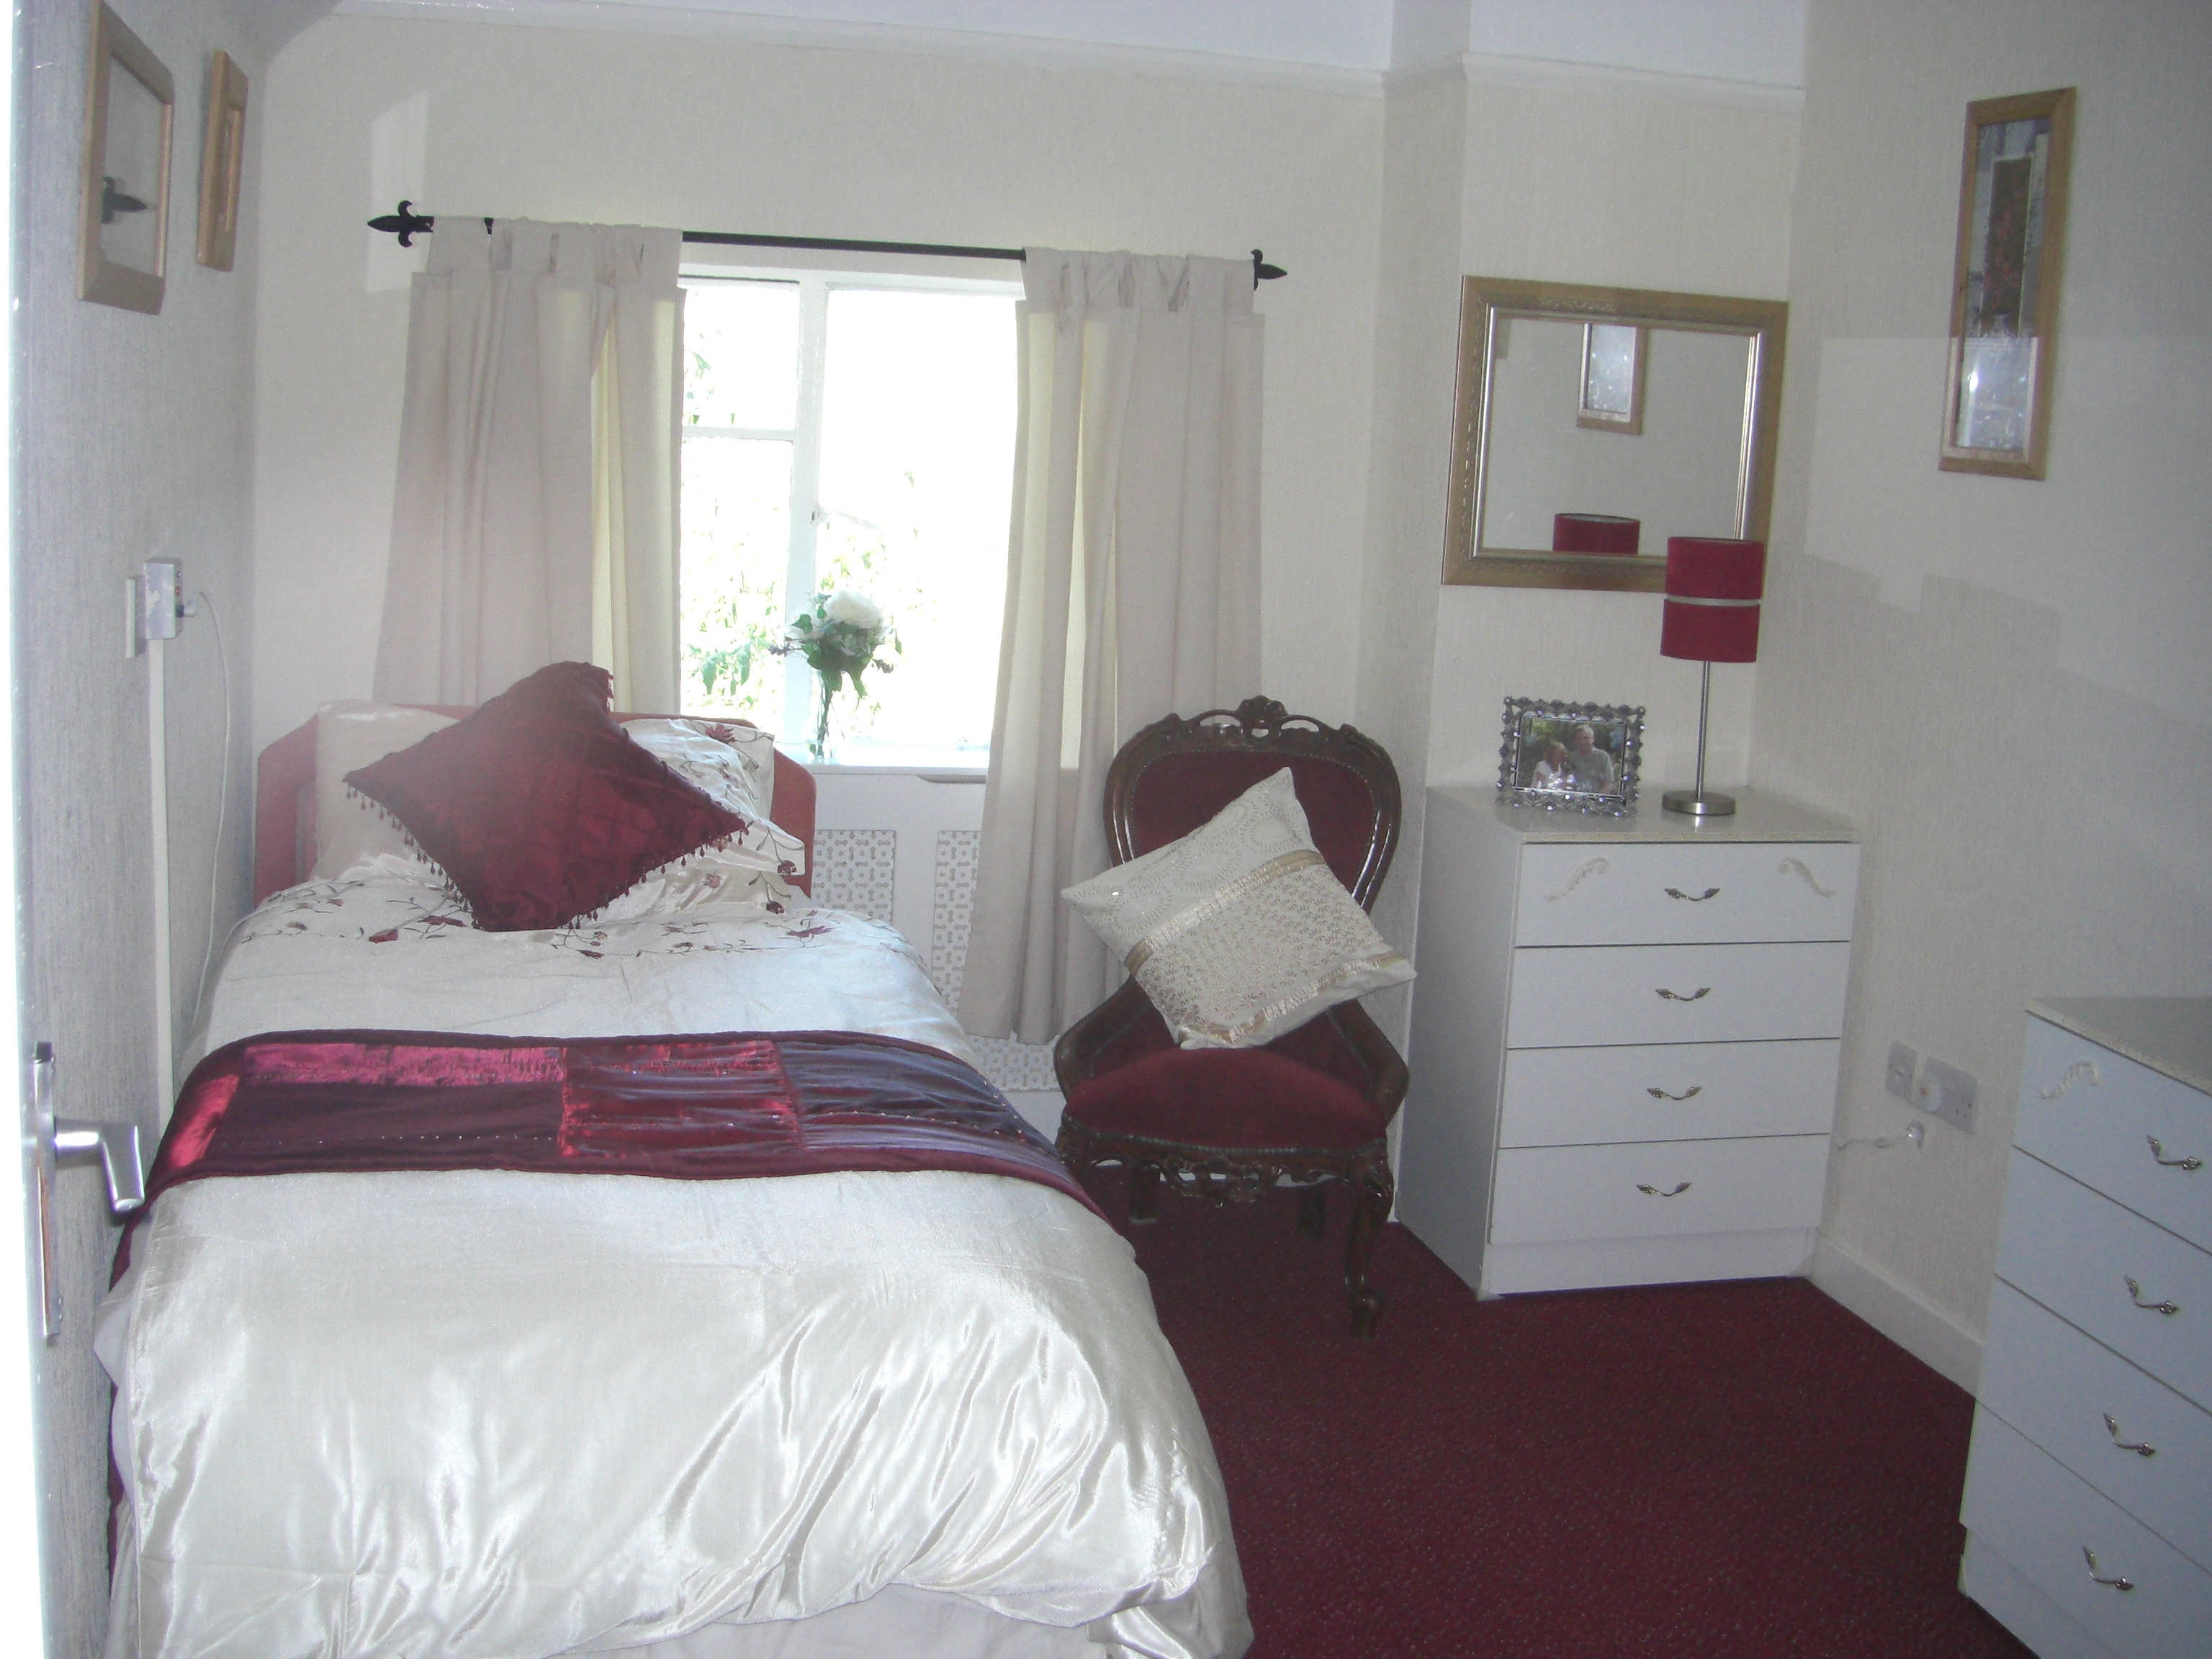 An example of a Bronafallen Bedroom